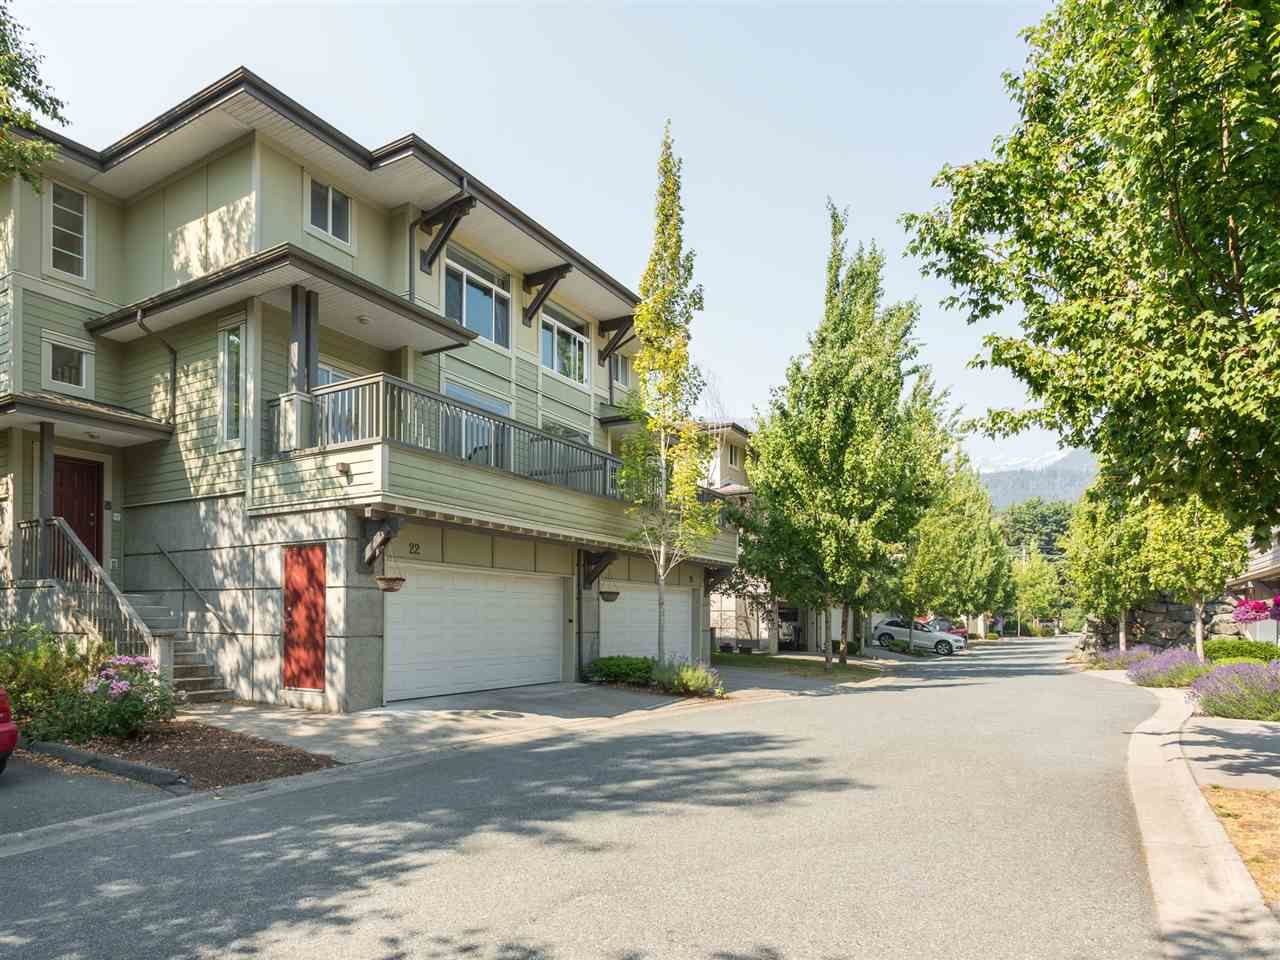 Main Photo: 22 40632 GOVERNMENT ROAD in Squamish: Brackendale Townhouse for sale : MLS®# R2189076